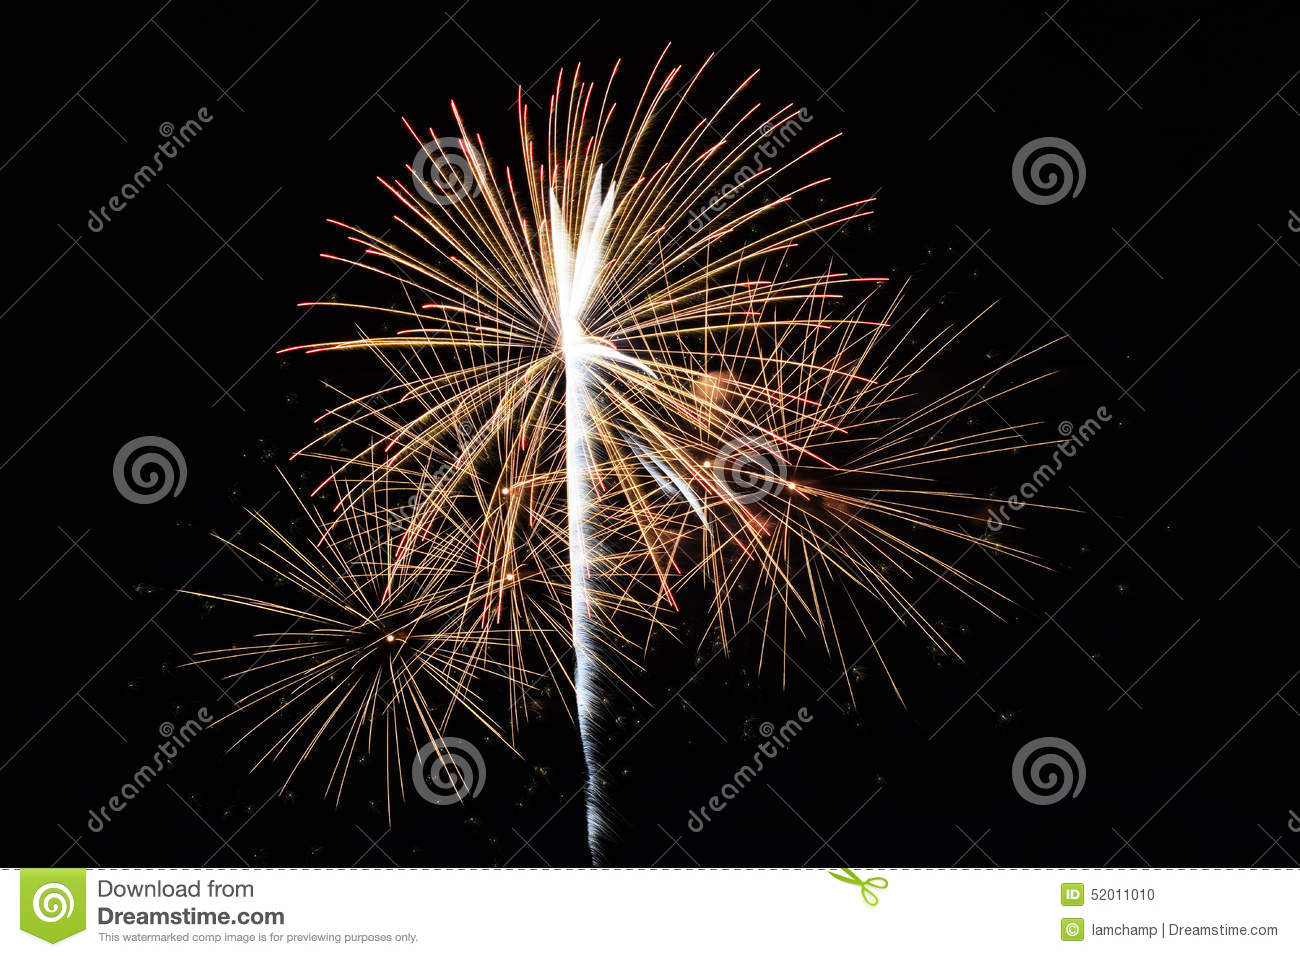 Abstract Colorful fireworks with various colors on dark night backgrounds